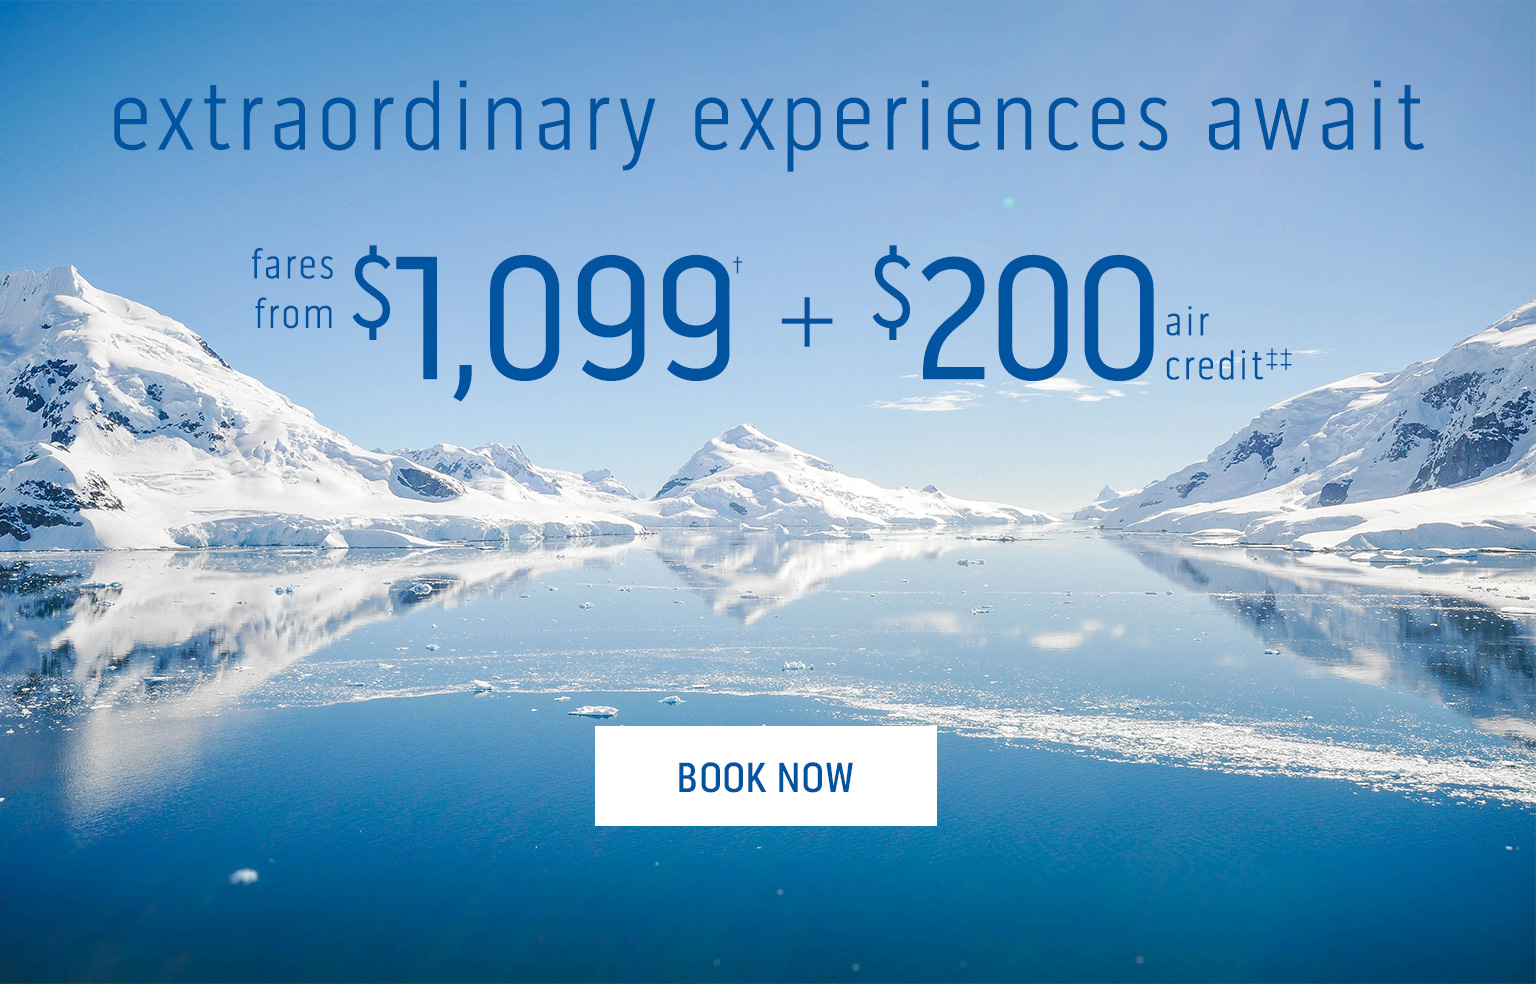 Princess Cruises South America adventure from $1,099 — plus a bonus